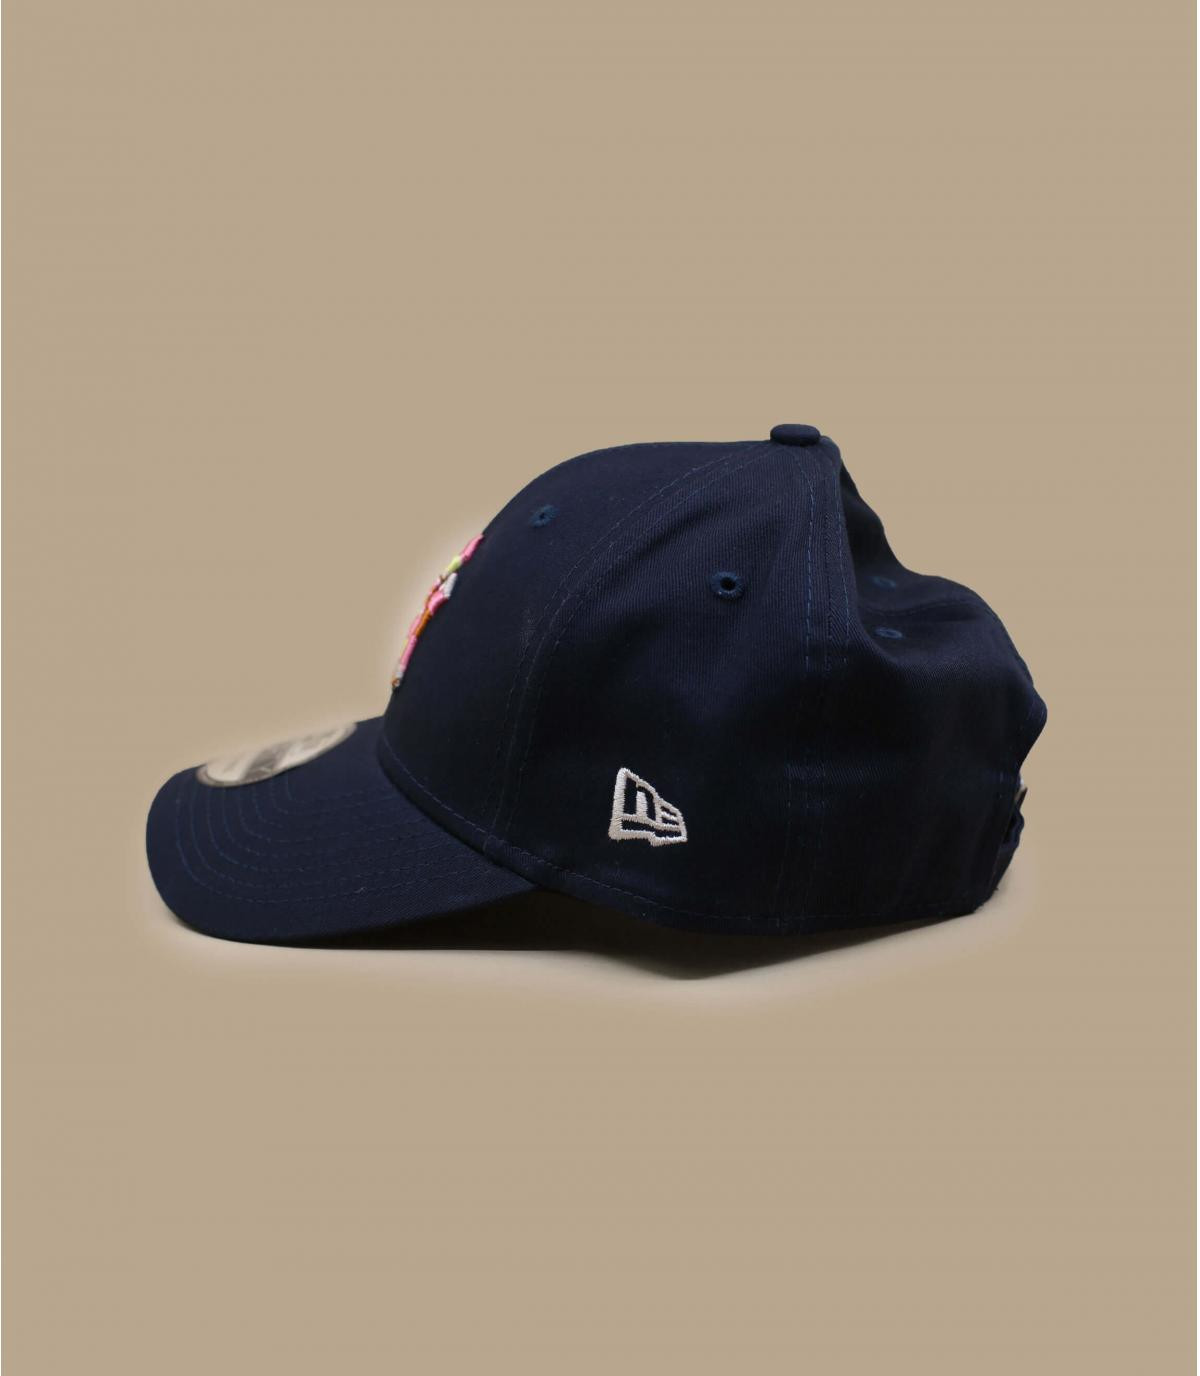 Détails Casquette Infill NY 940 navy - image 3